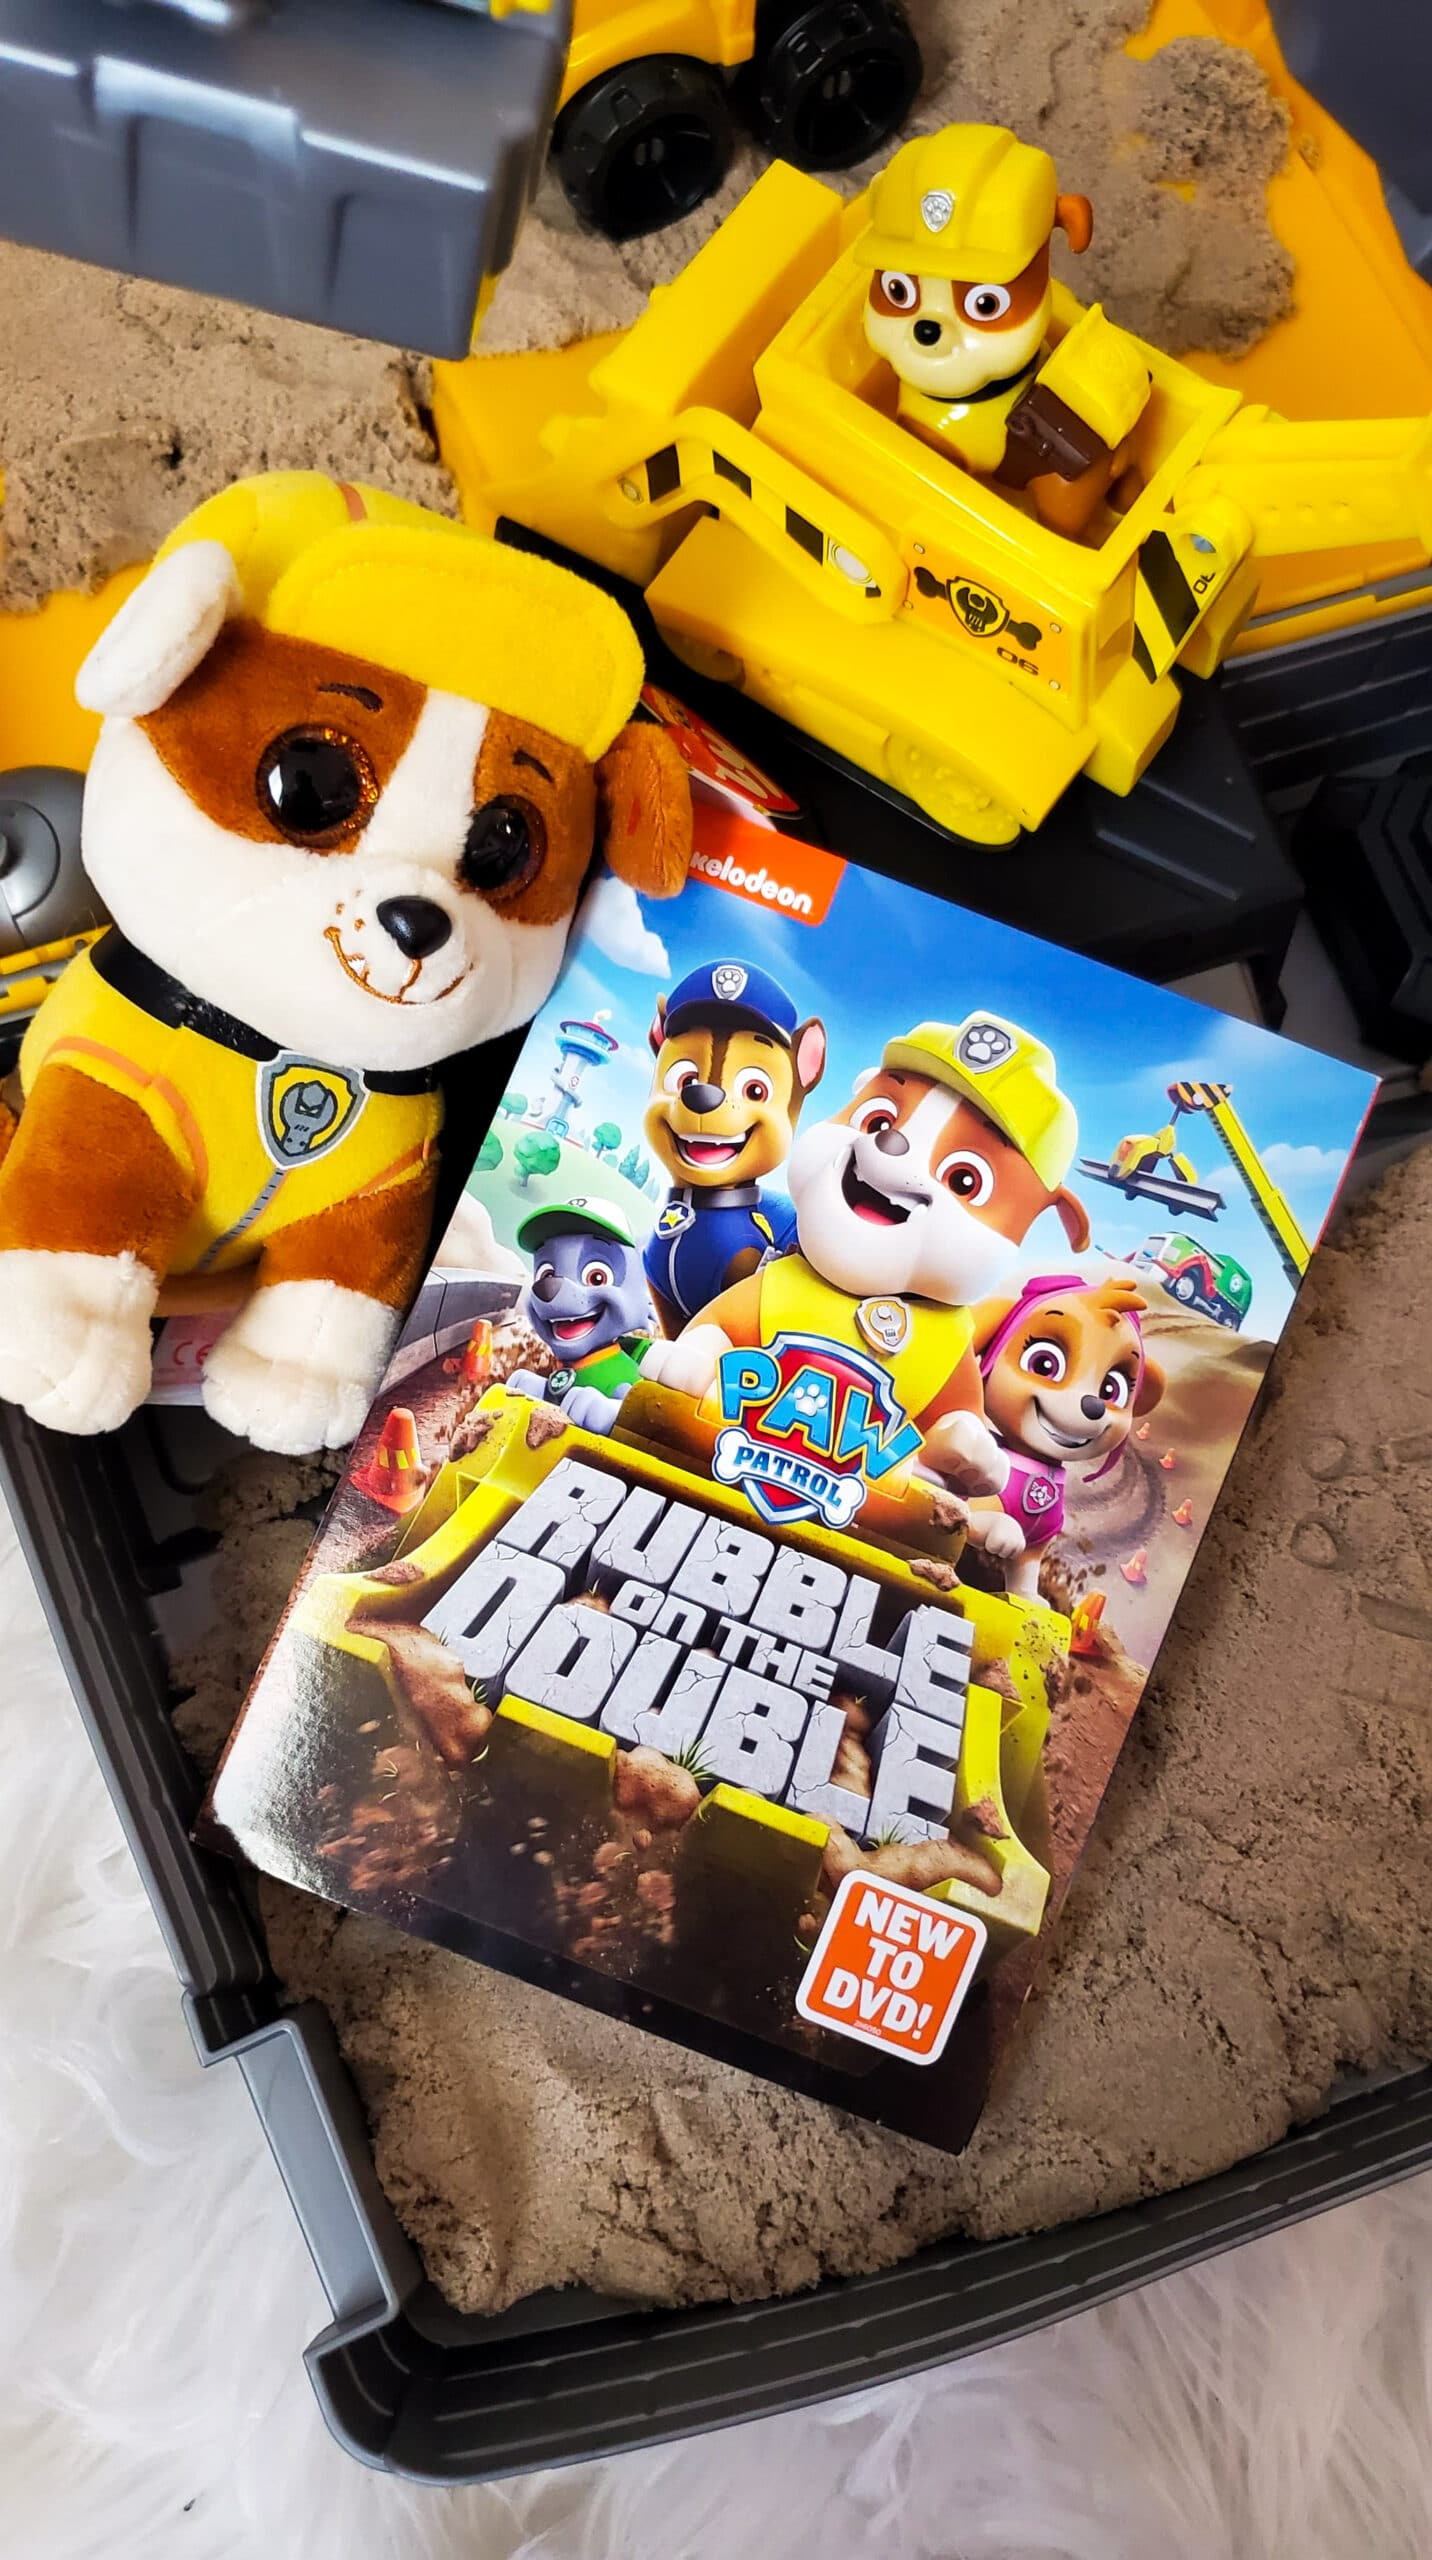 """Get ready to raise the """"woof"""" with Rubble and the rest of the PAW Patrol in nine new construction missions! Rubble and the PAW Patrol are ready to wreck-and-roll in PAW Patrol: Rubble on the Double, now available on DVD!"""